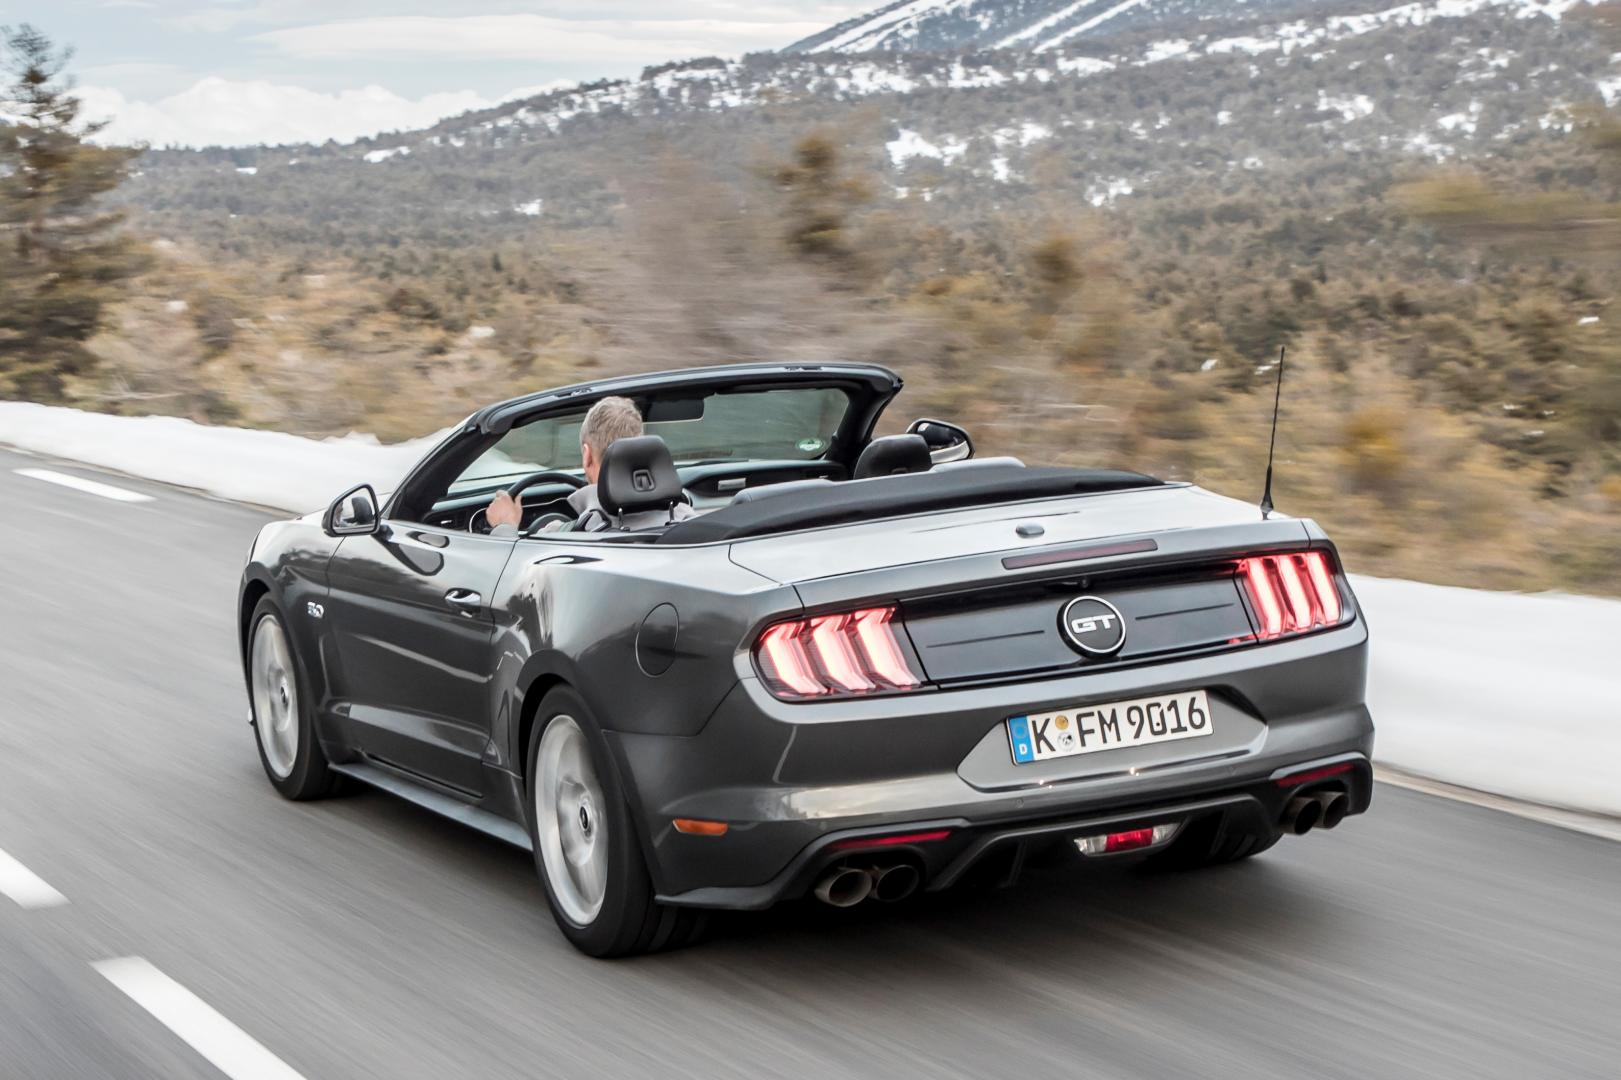 ford mustang 5 0 v8 gt convertible 2018 topgear. Black Bedroom Furniture Sets. Home Design Ideas